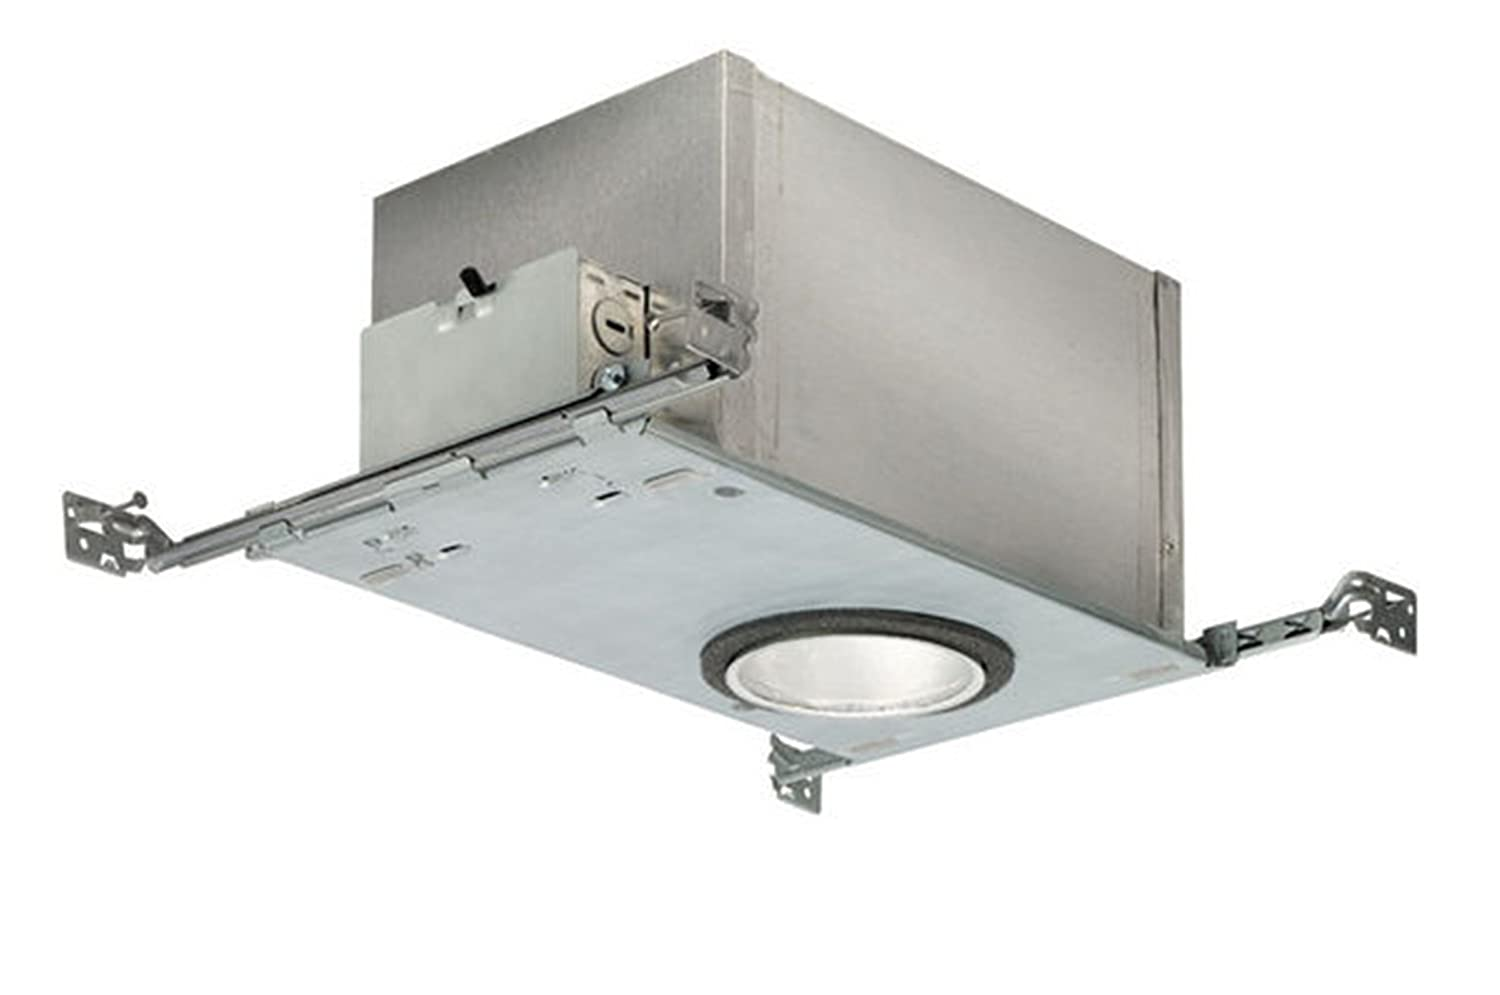 Juno Lighting ICPL418E 4-Inch 18-Watt 120-Volt HPF Electronic Ballast New Construction CFL Recessed Housing Juno Lighting Group